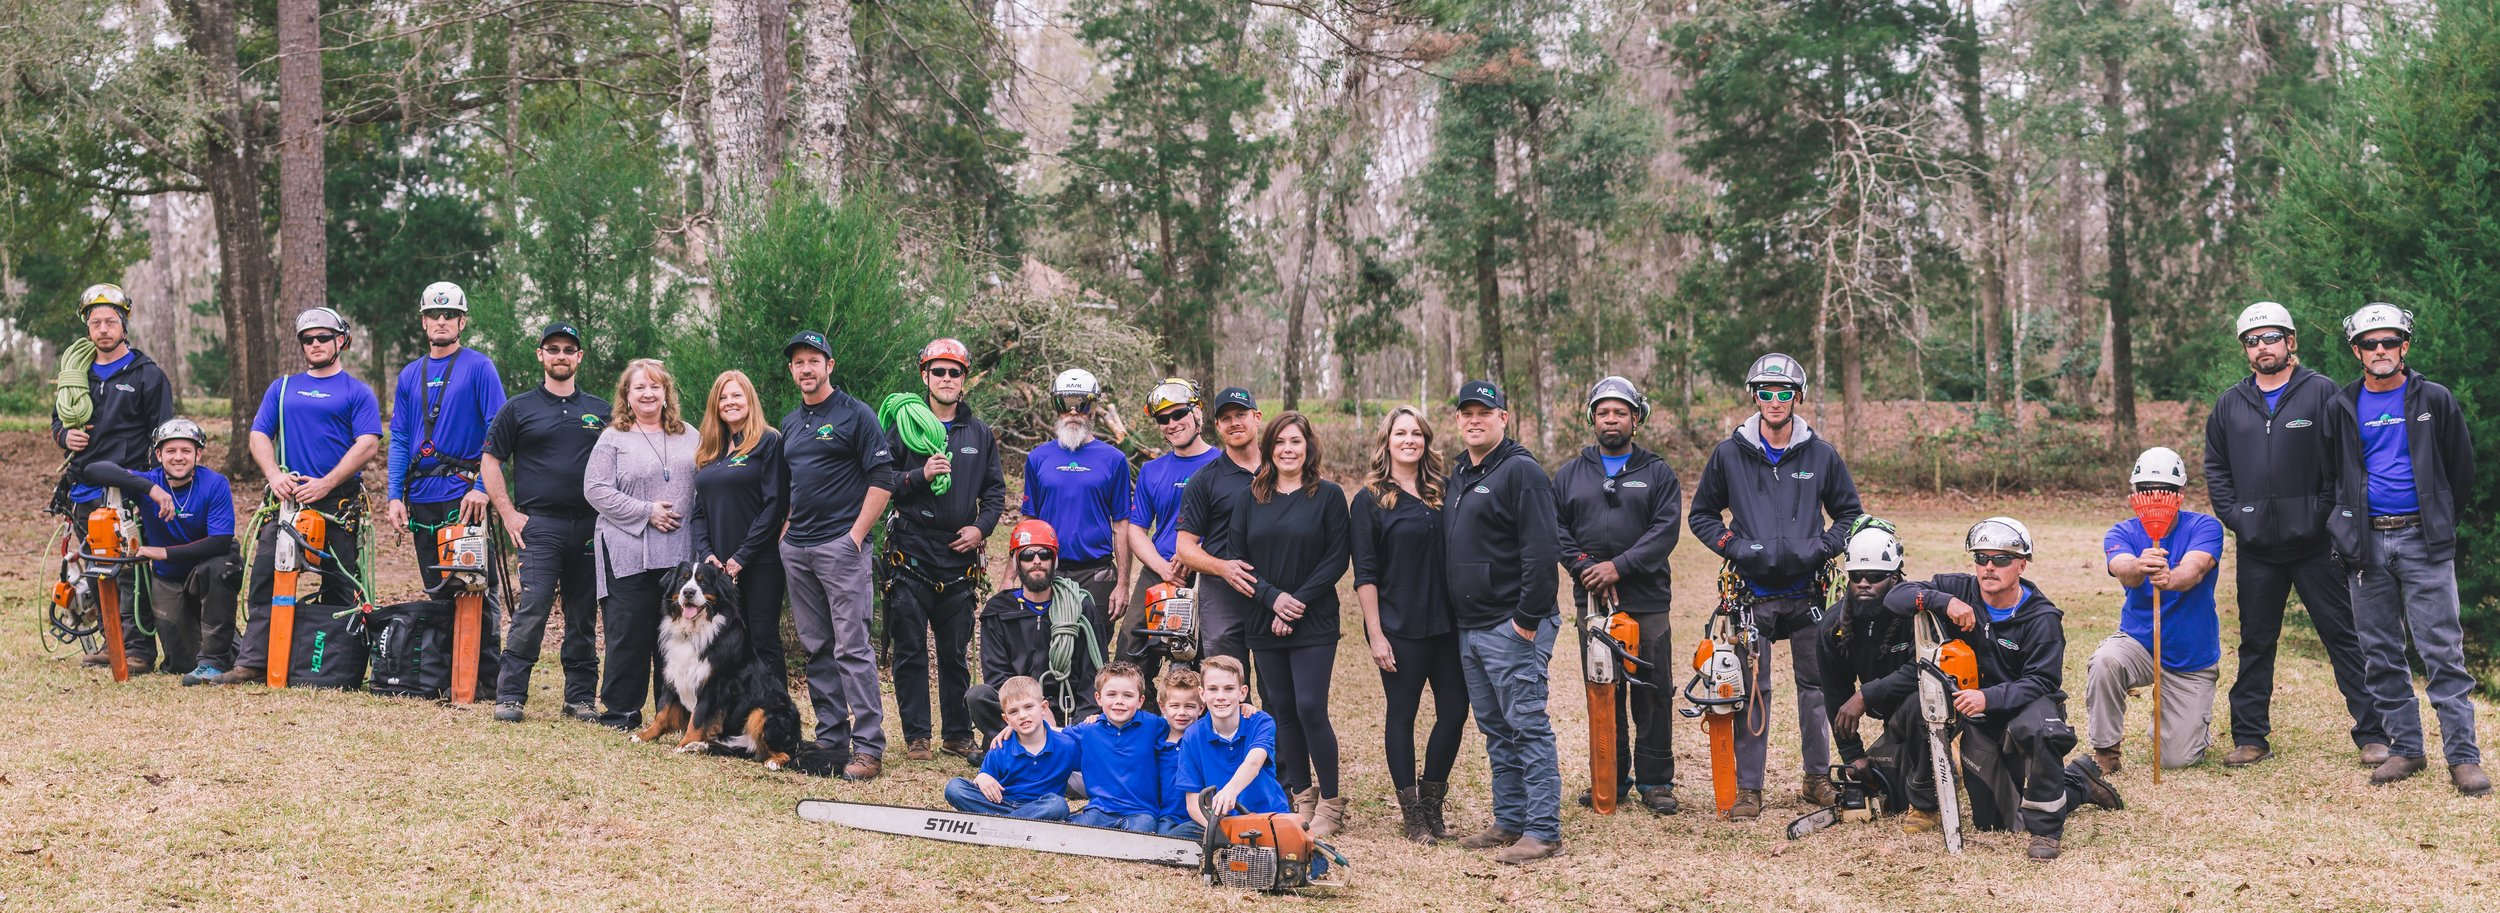 tree service in Tallahassee team of tree workers and Arborists